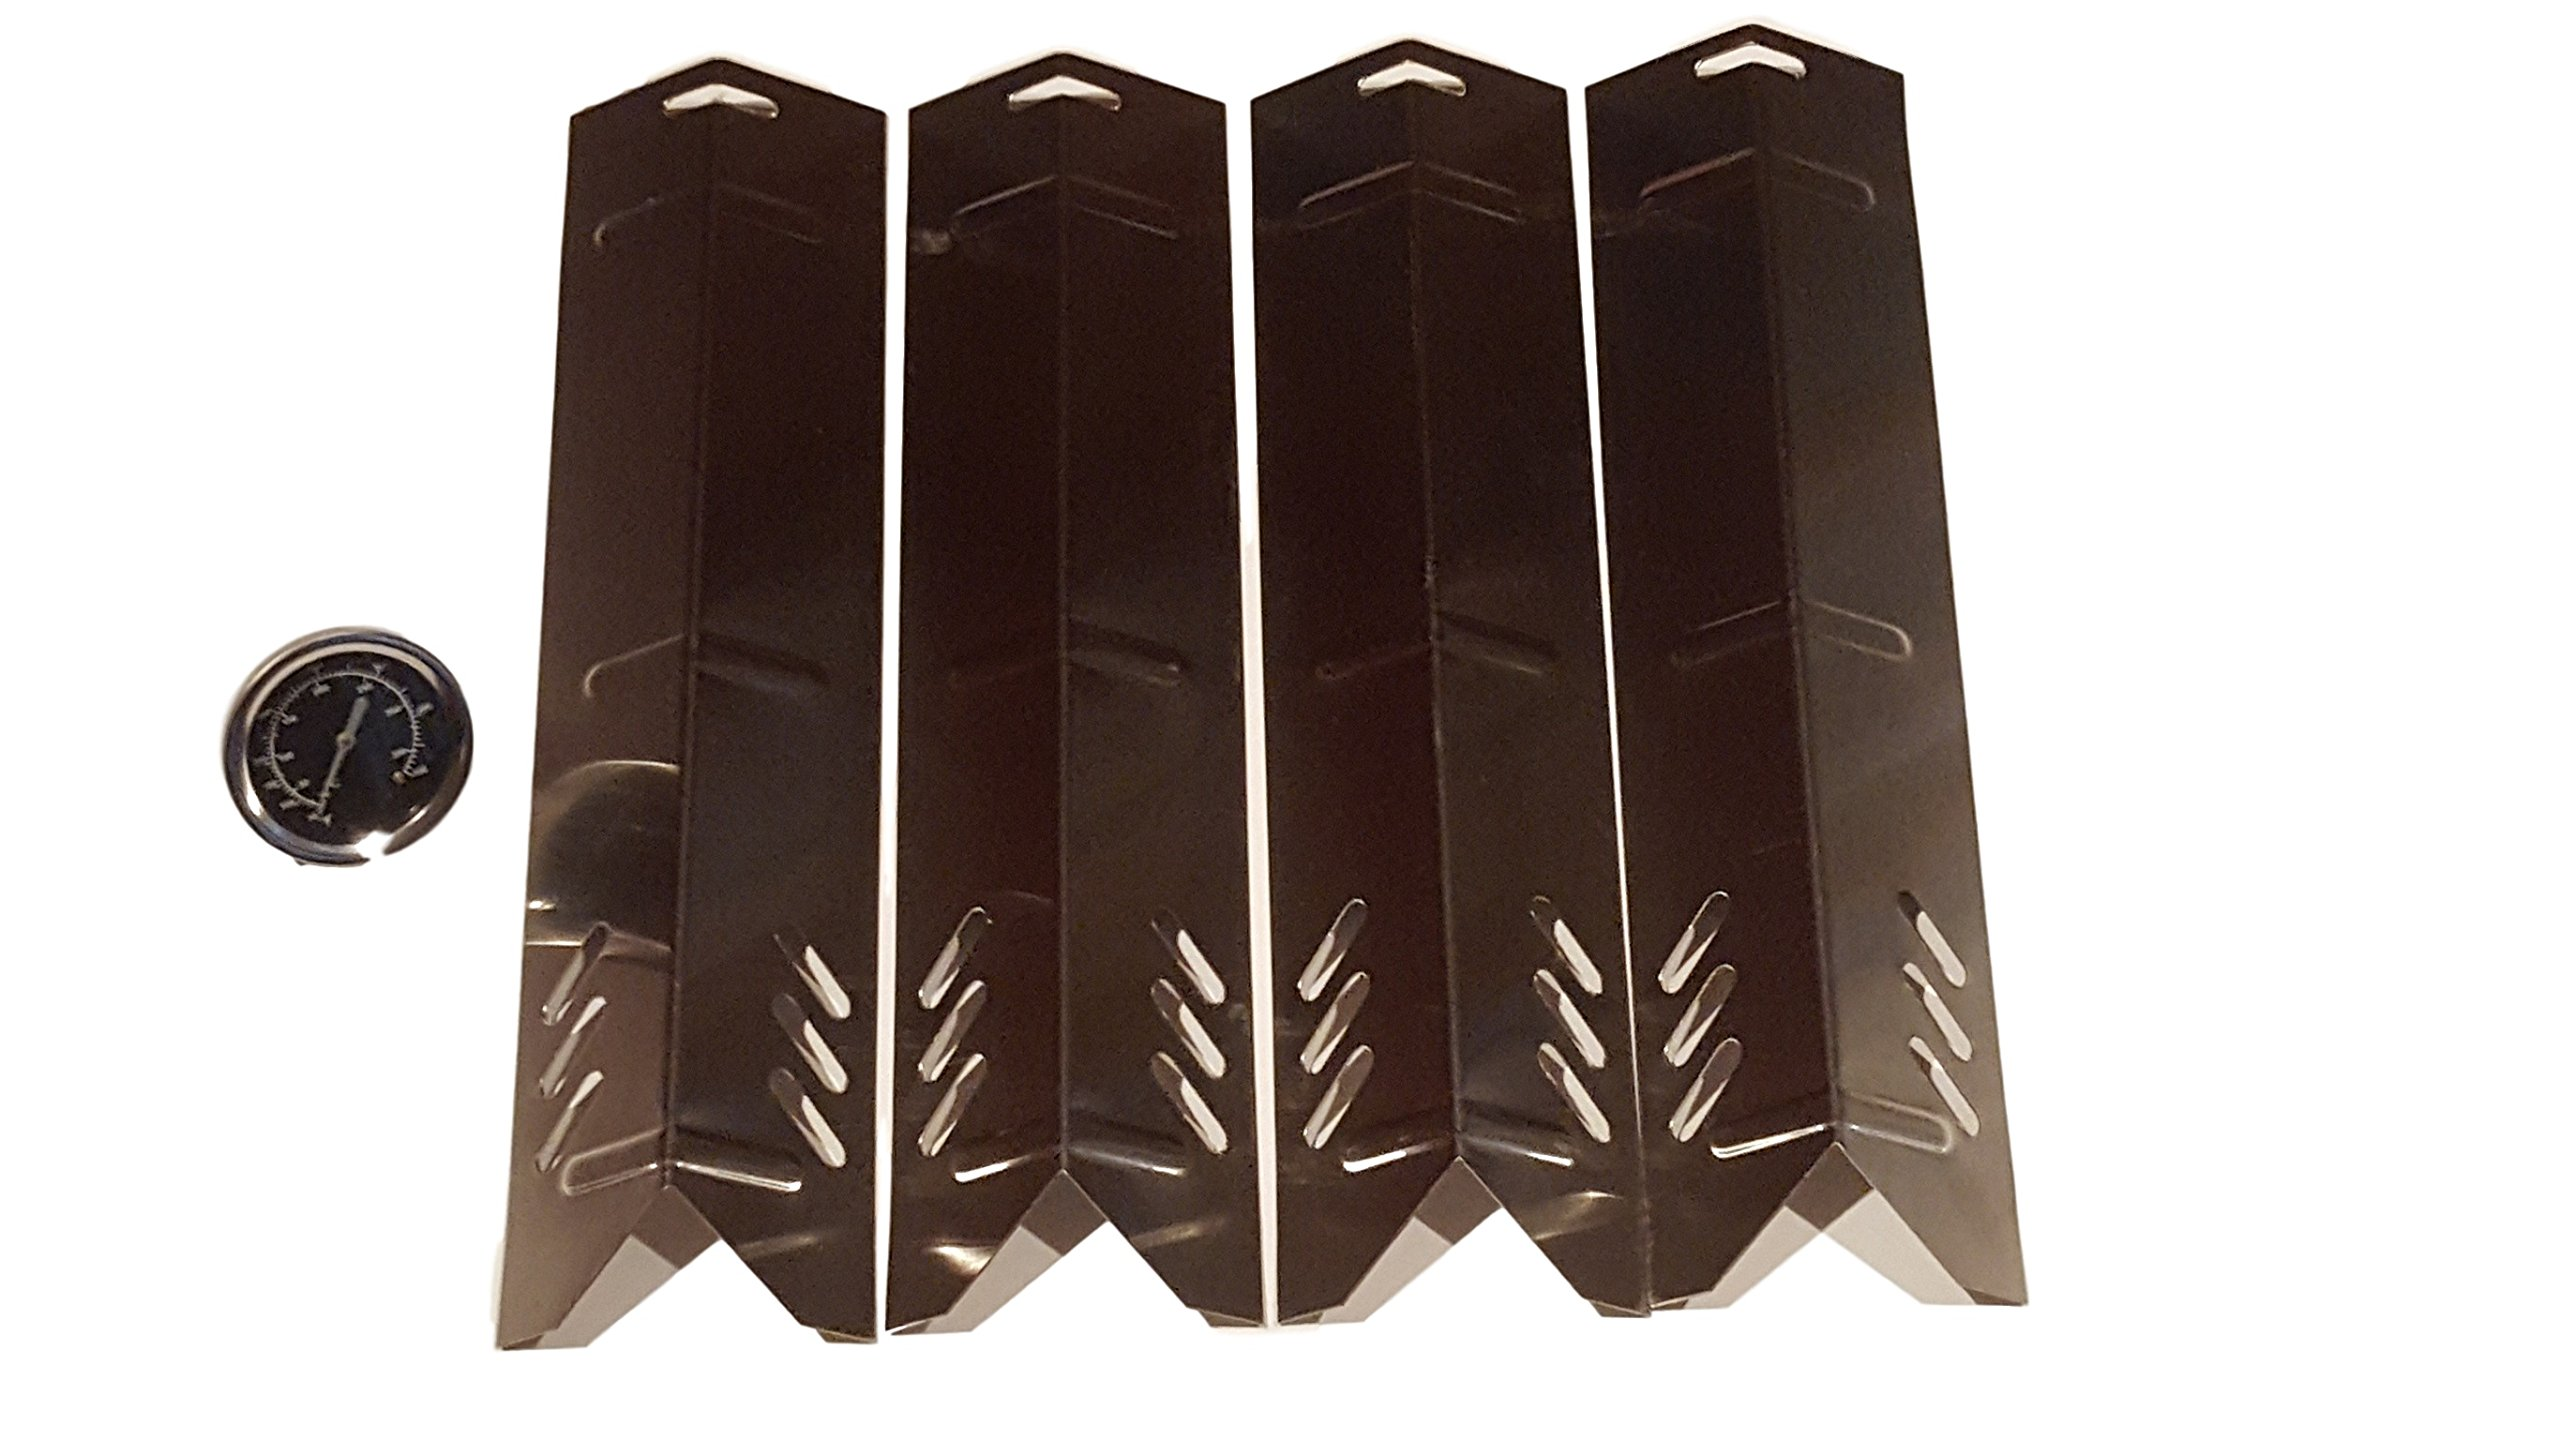 Set of Four Replacement Heat plates (with one free Brinkmann Bbq Temp Gauge) for Uniflame, Better Home and Garden and Backyard Grill Models